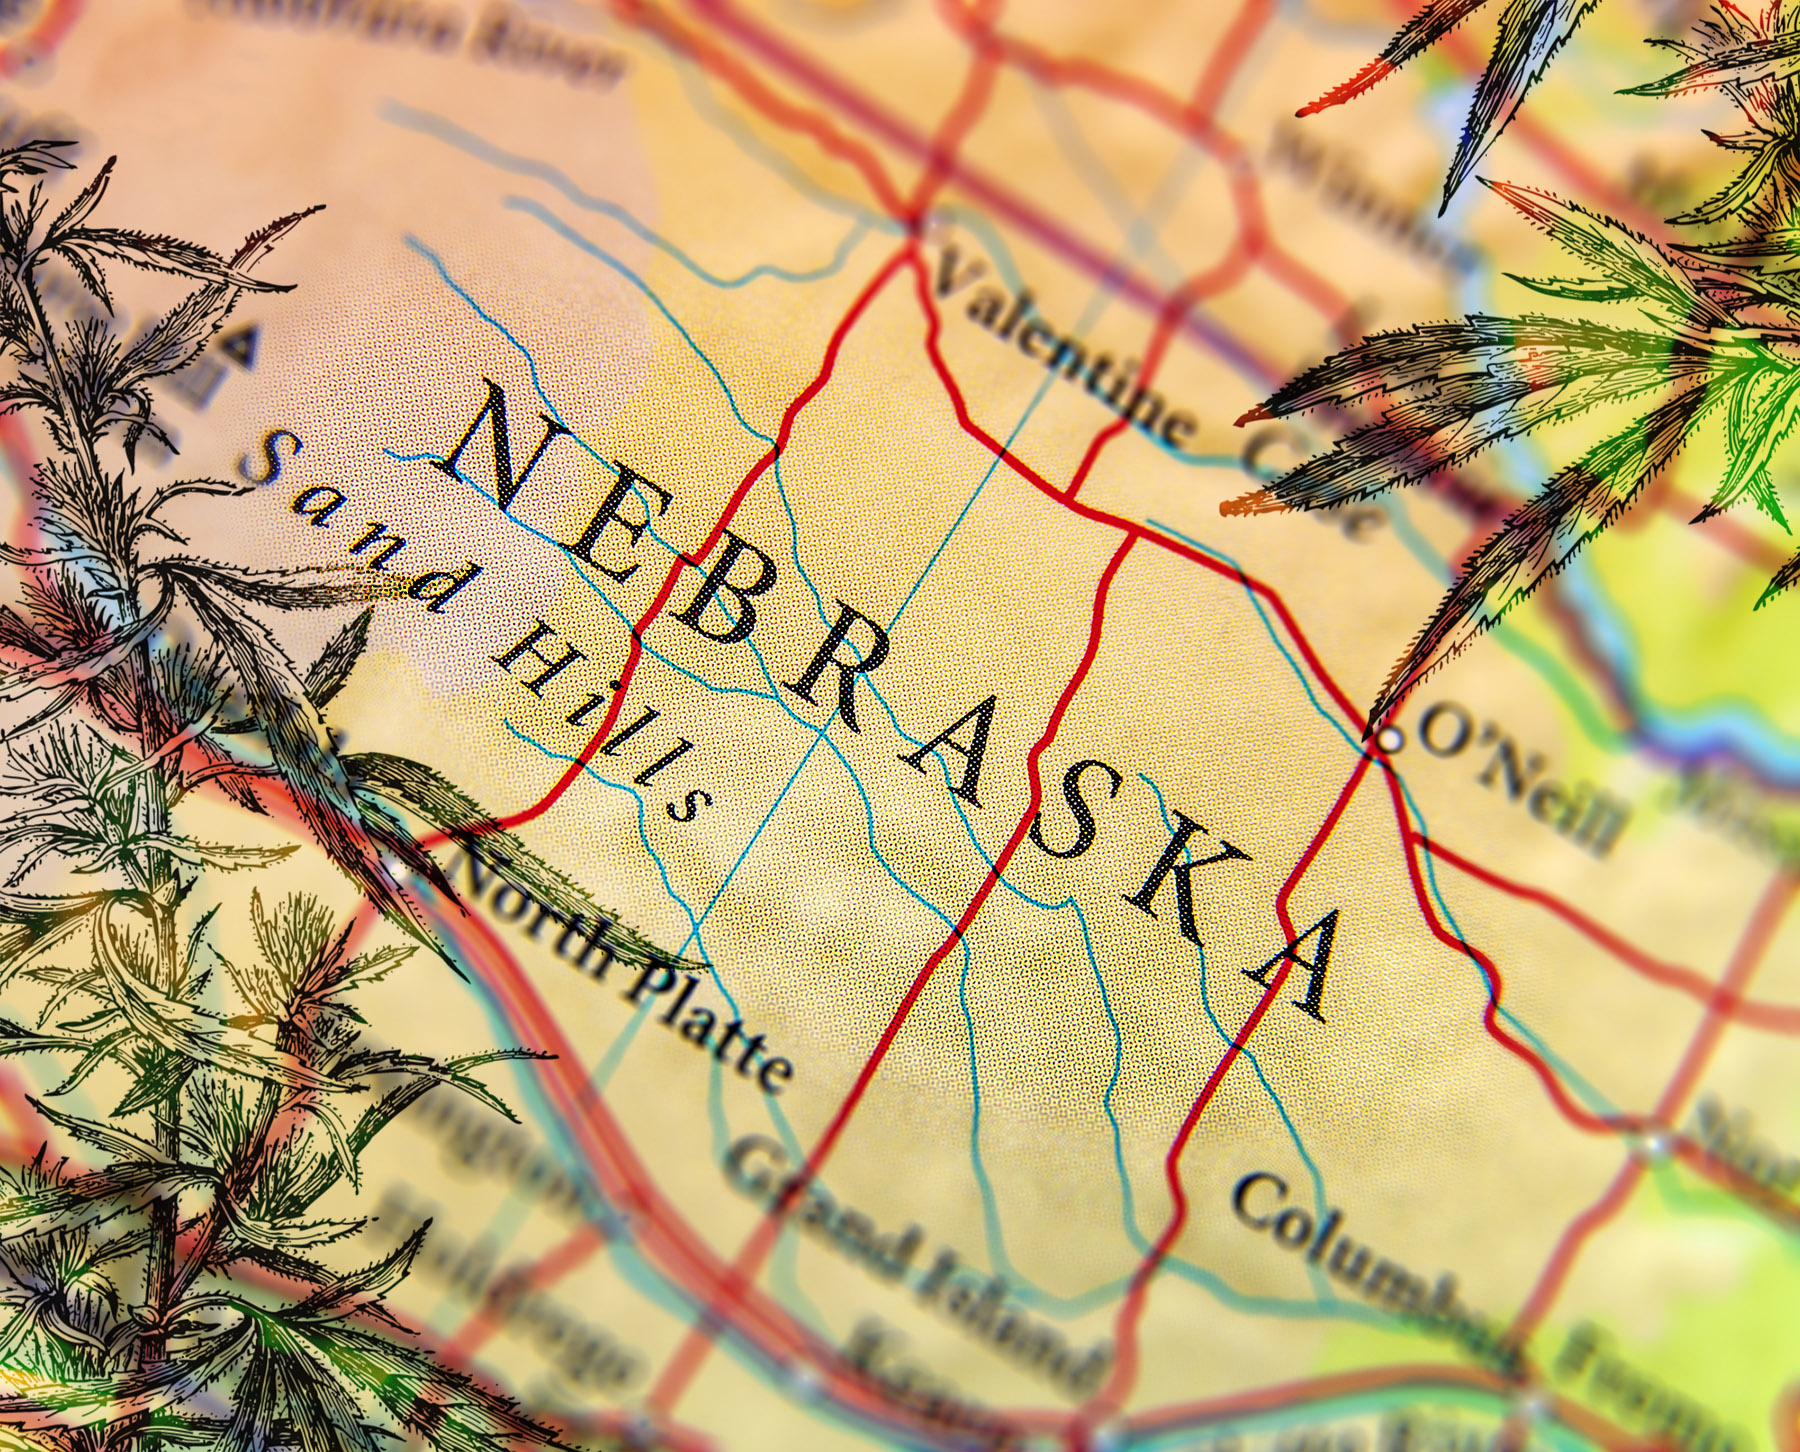 Nebraska Medical Marijuana Legalization Bill Introduced